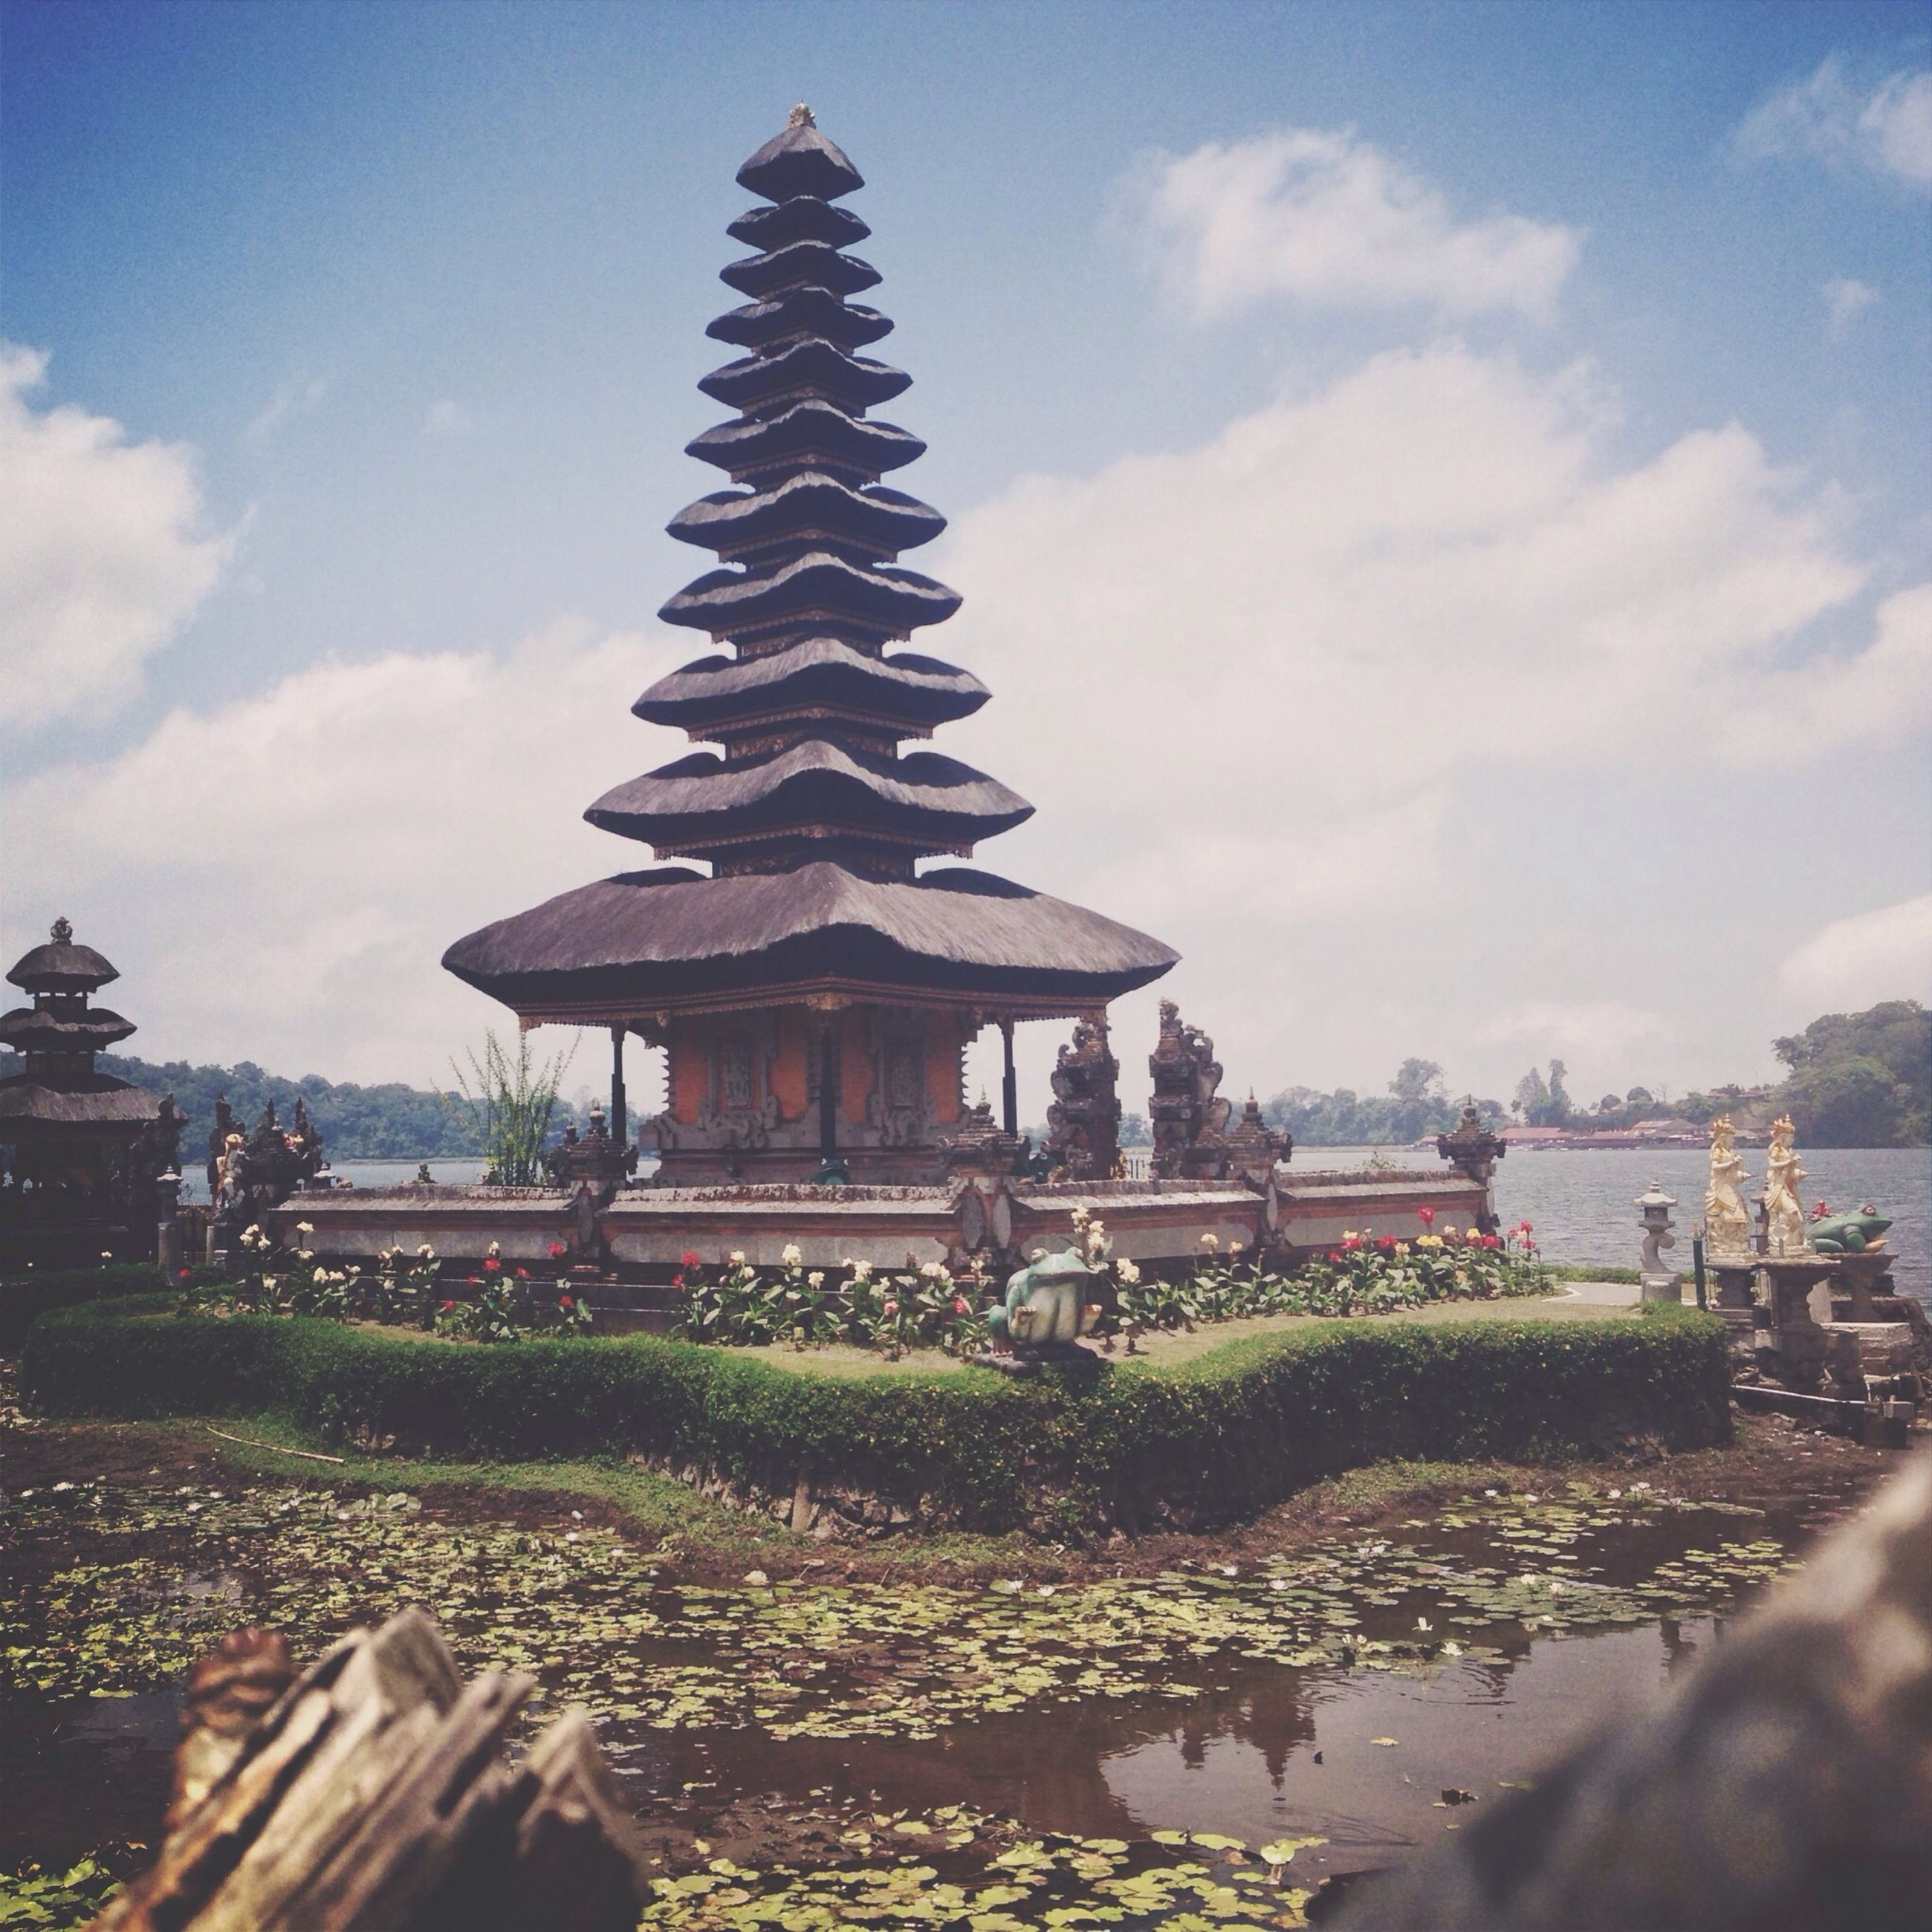 built structure, architecture, sky, religion, building exterior, place of worship, spirituality, cloud - sky, temple - building, water, tree, tranquility, cloud, nature, travel destinations, day, outdoors, no people, famous place